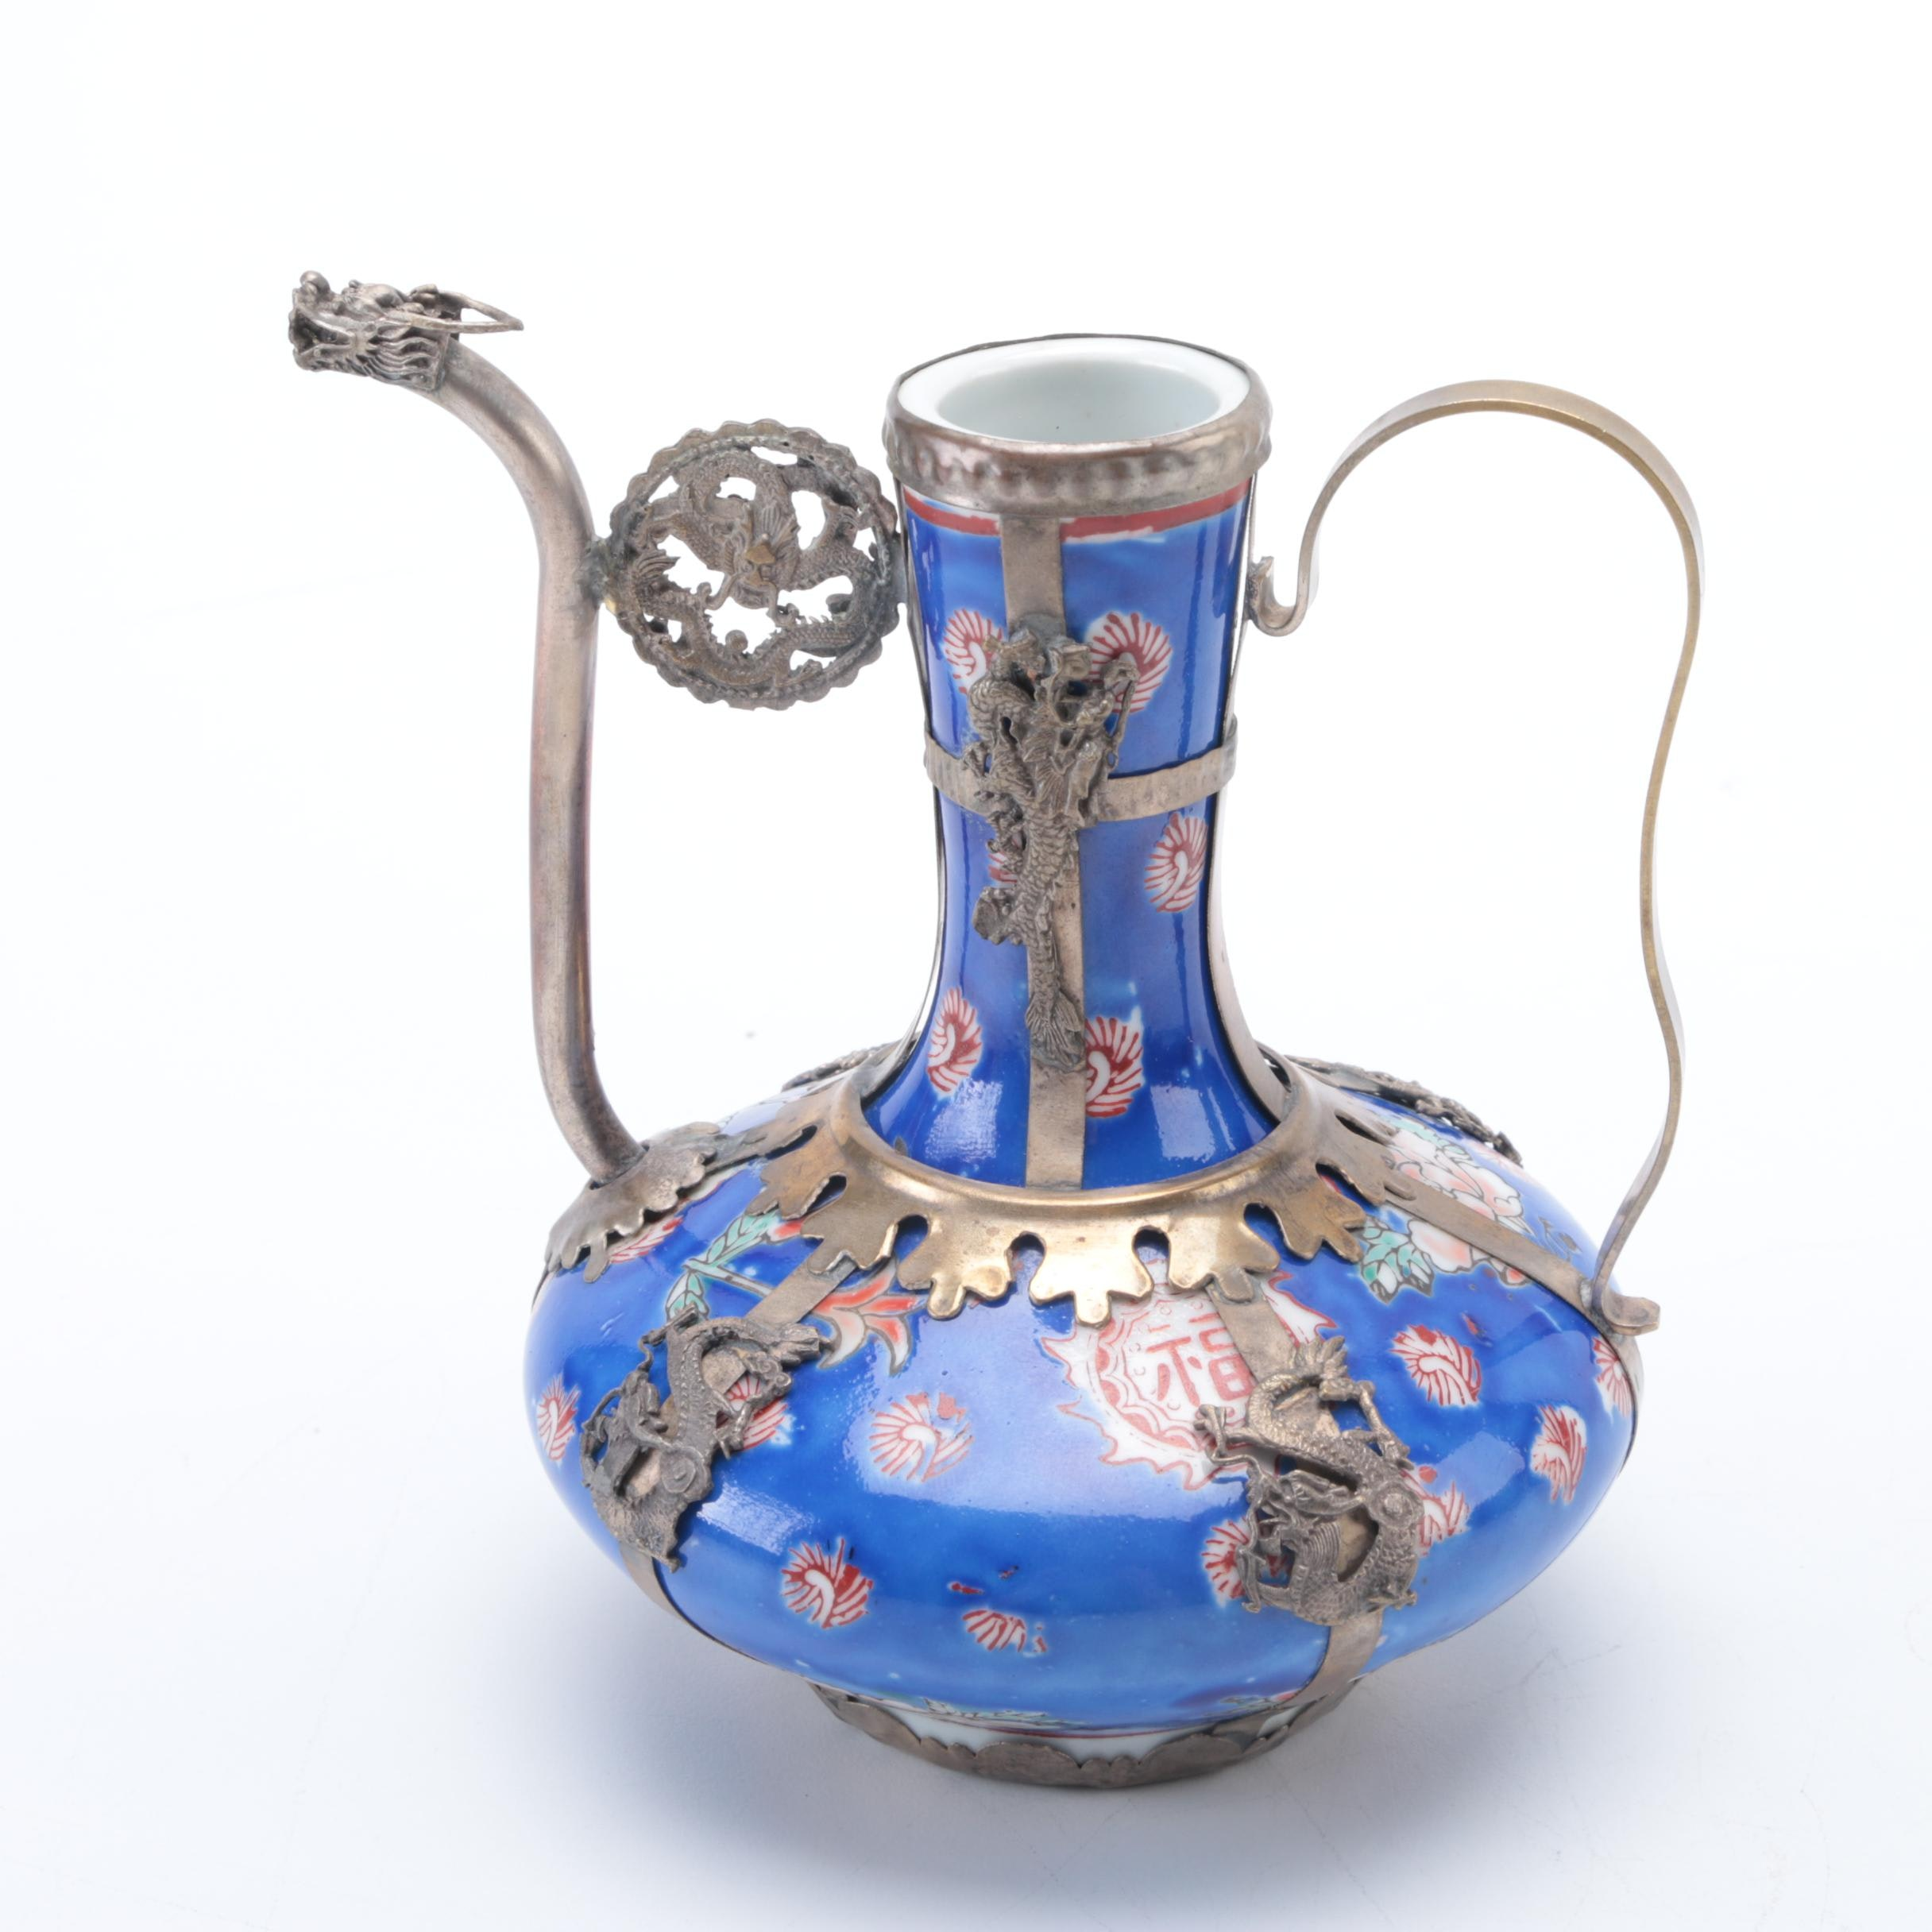 Chinese Hand-Painted Ceramic Teapot With Brass Overlay